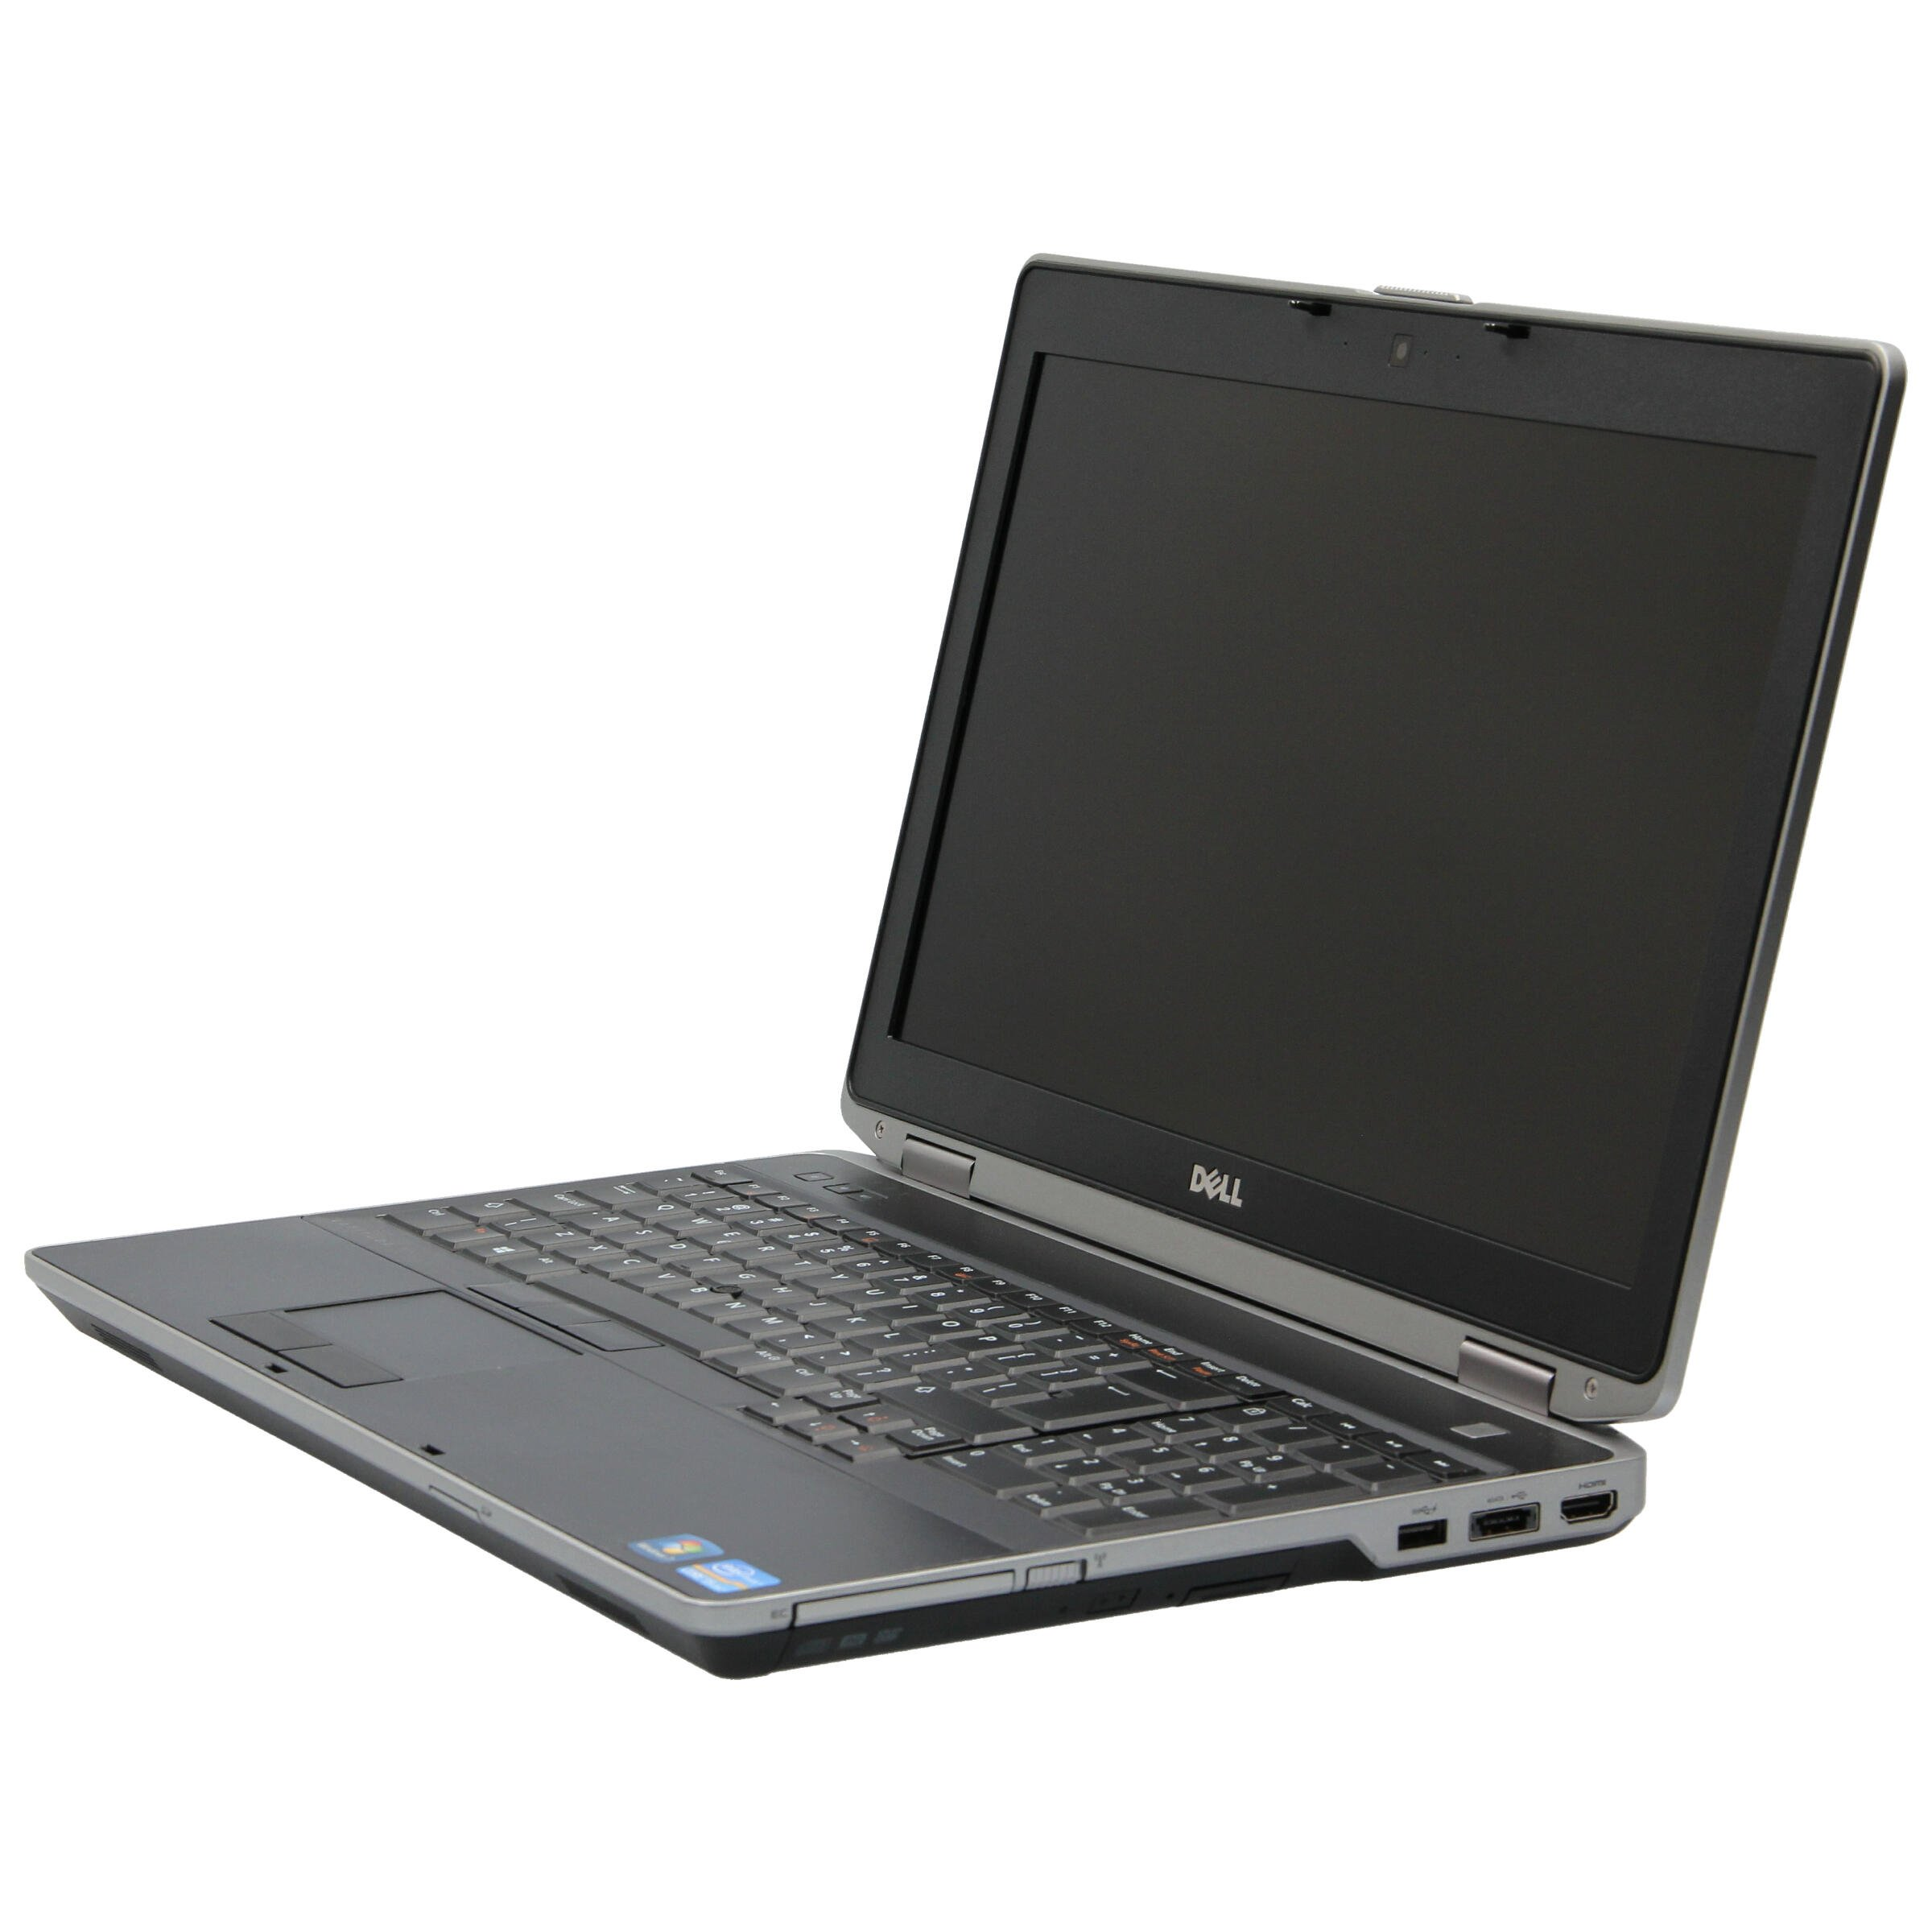 Dell Latitude e6530 do 3000 zł